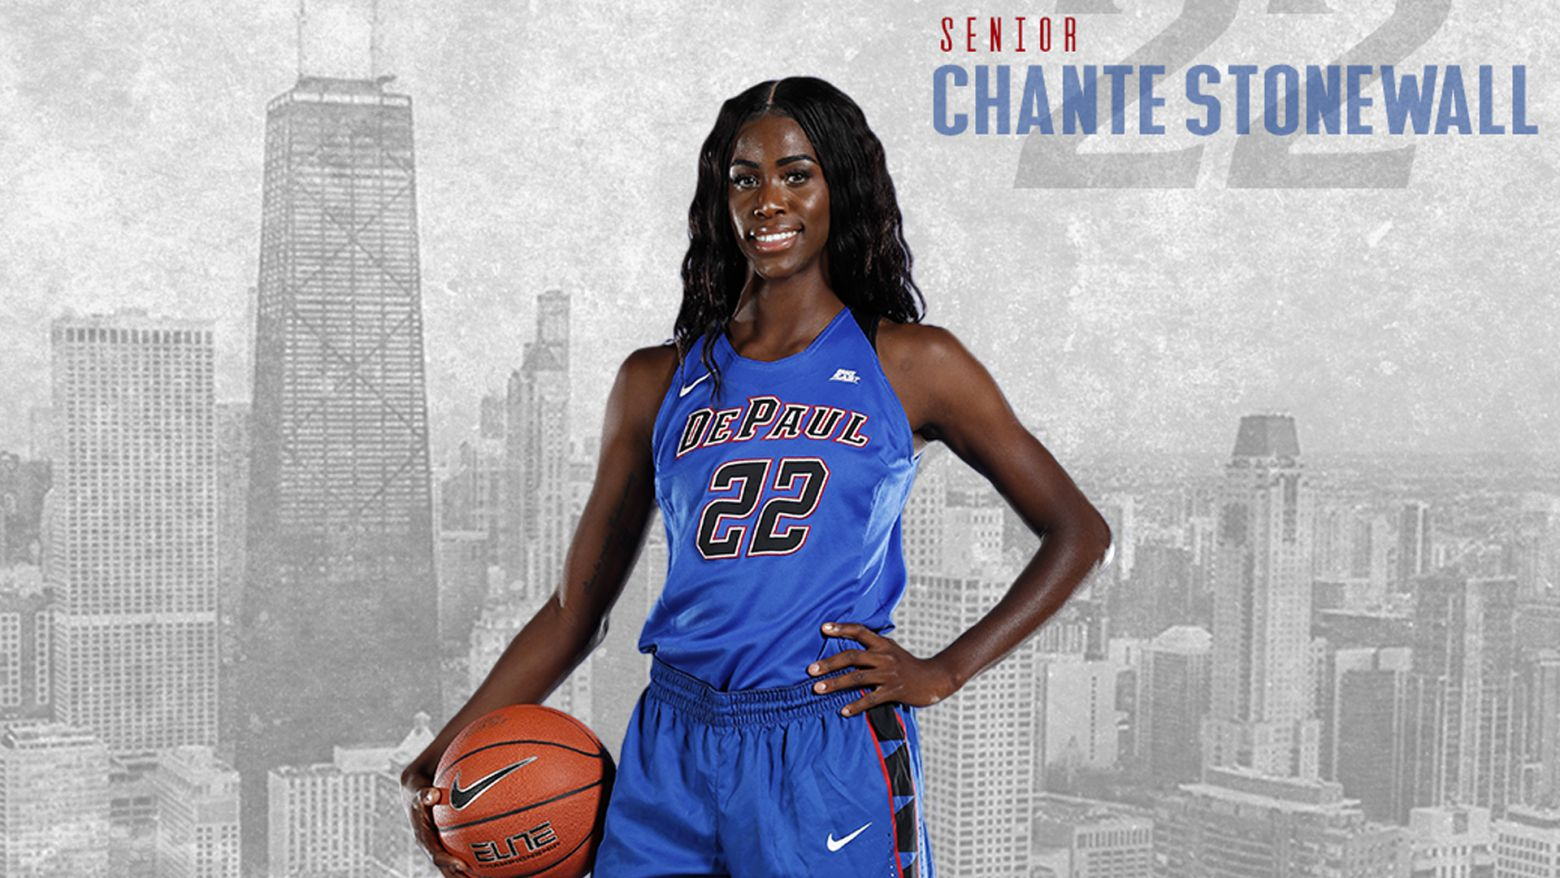 CHANTE STONEWALL has signed with Regeneracom Sports